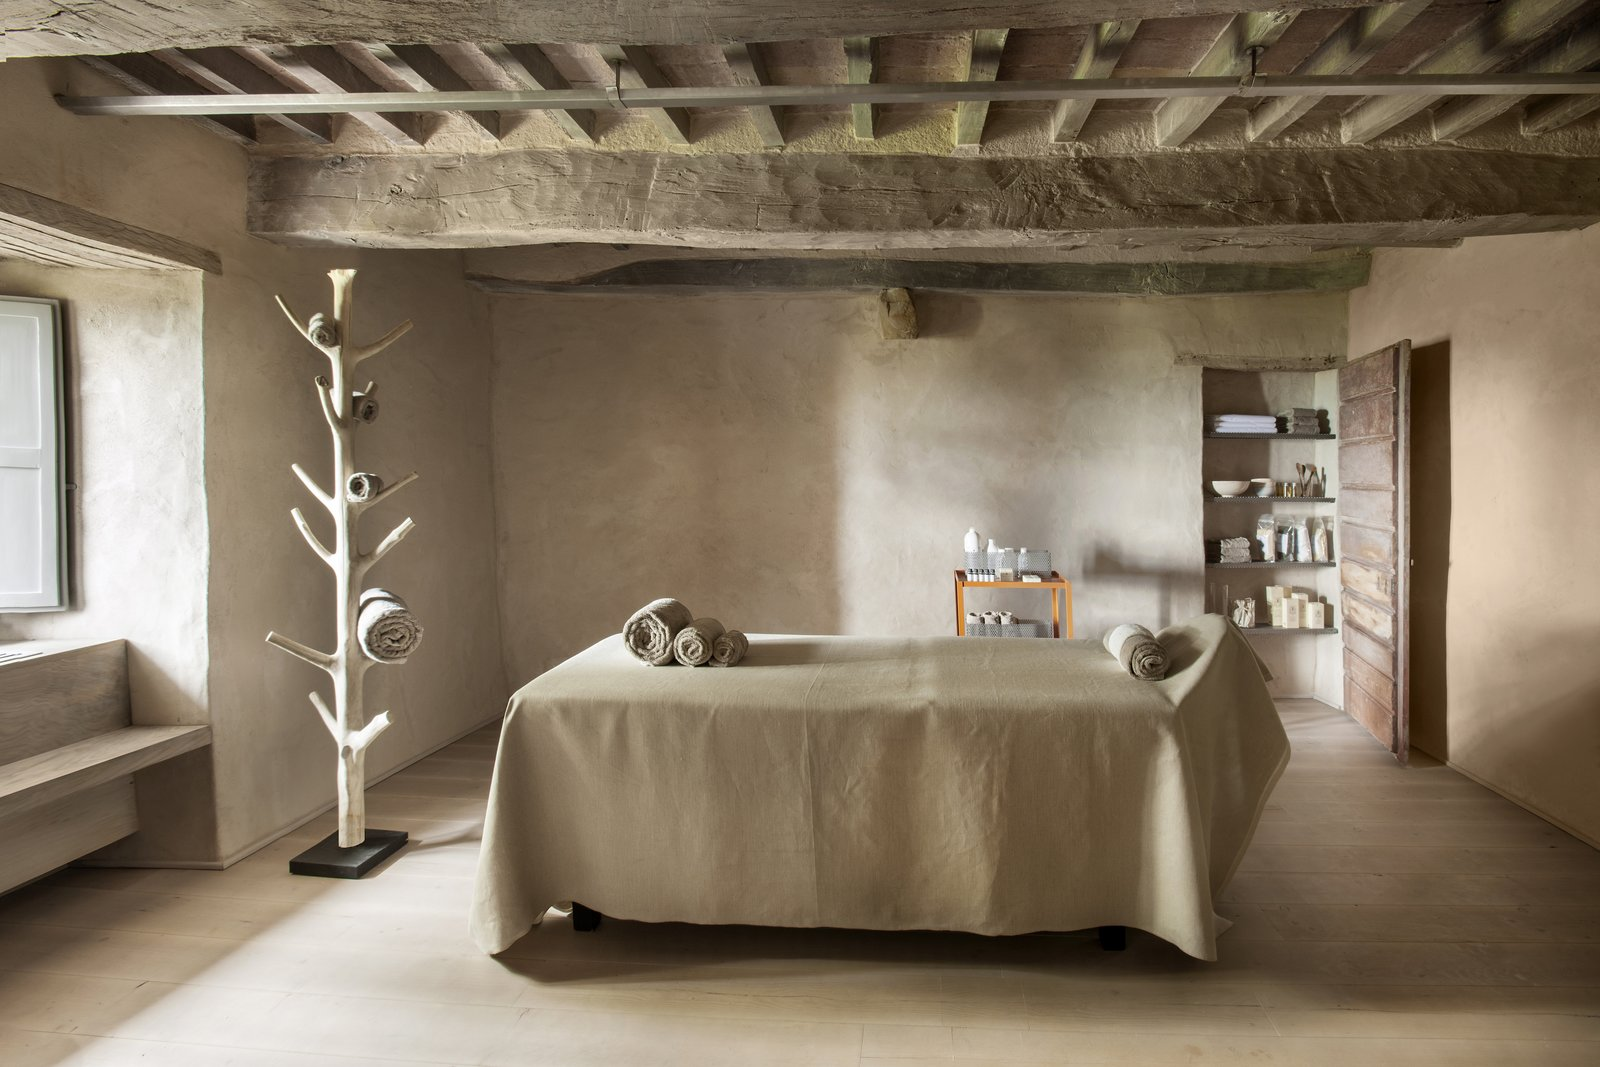 Photo 2 of 9 in A Tree-Filled Spa That Brings Warm Modernism to a 900-Year-Old Tuscan Village